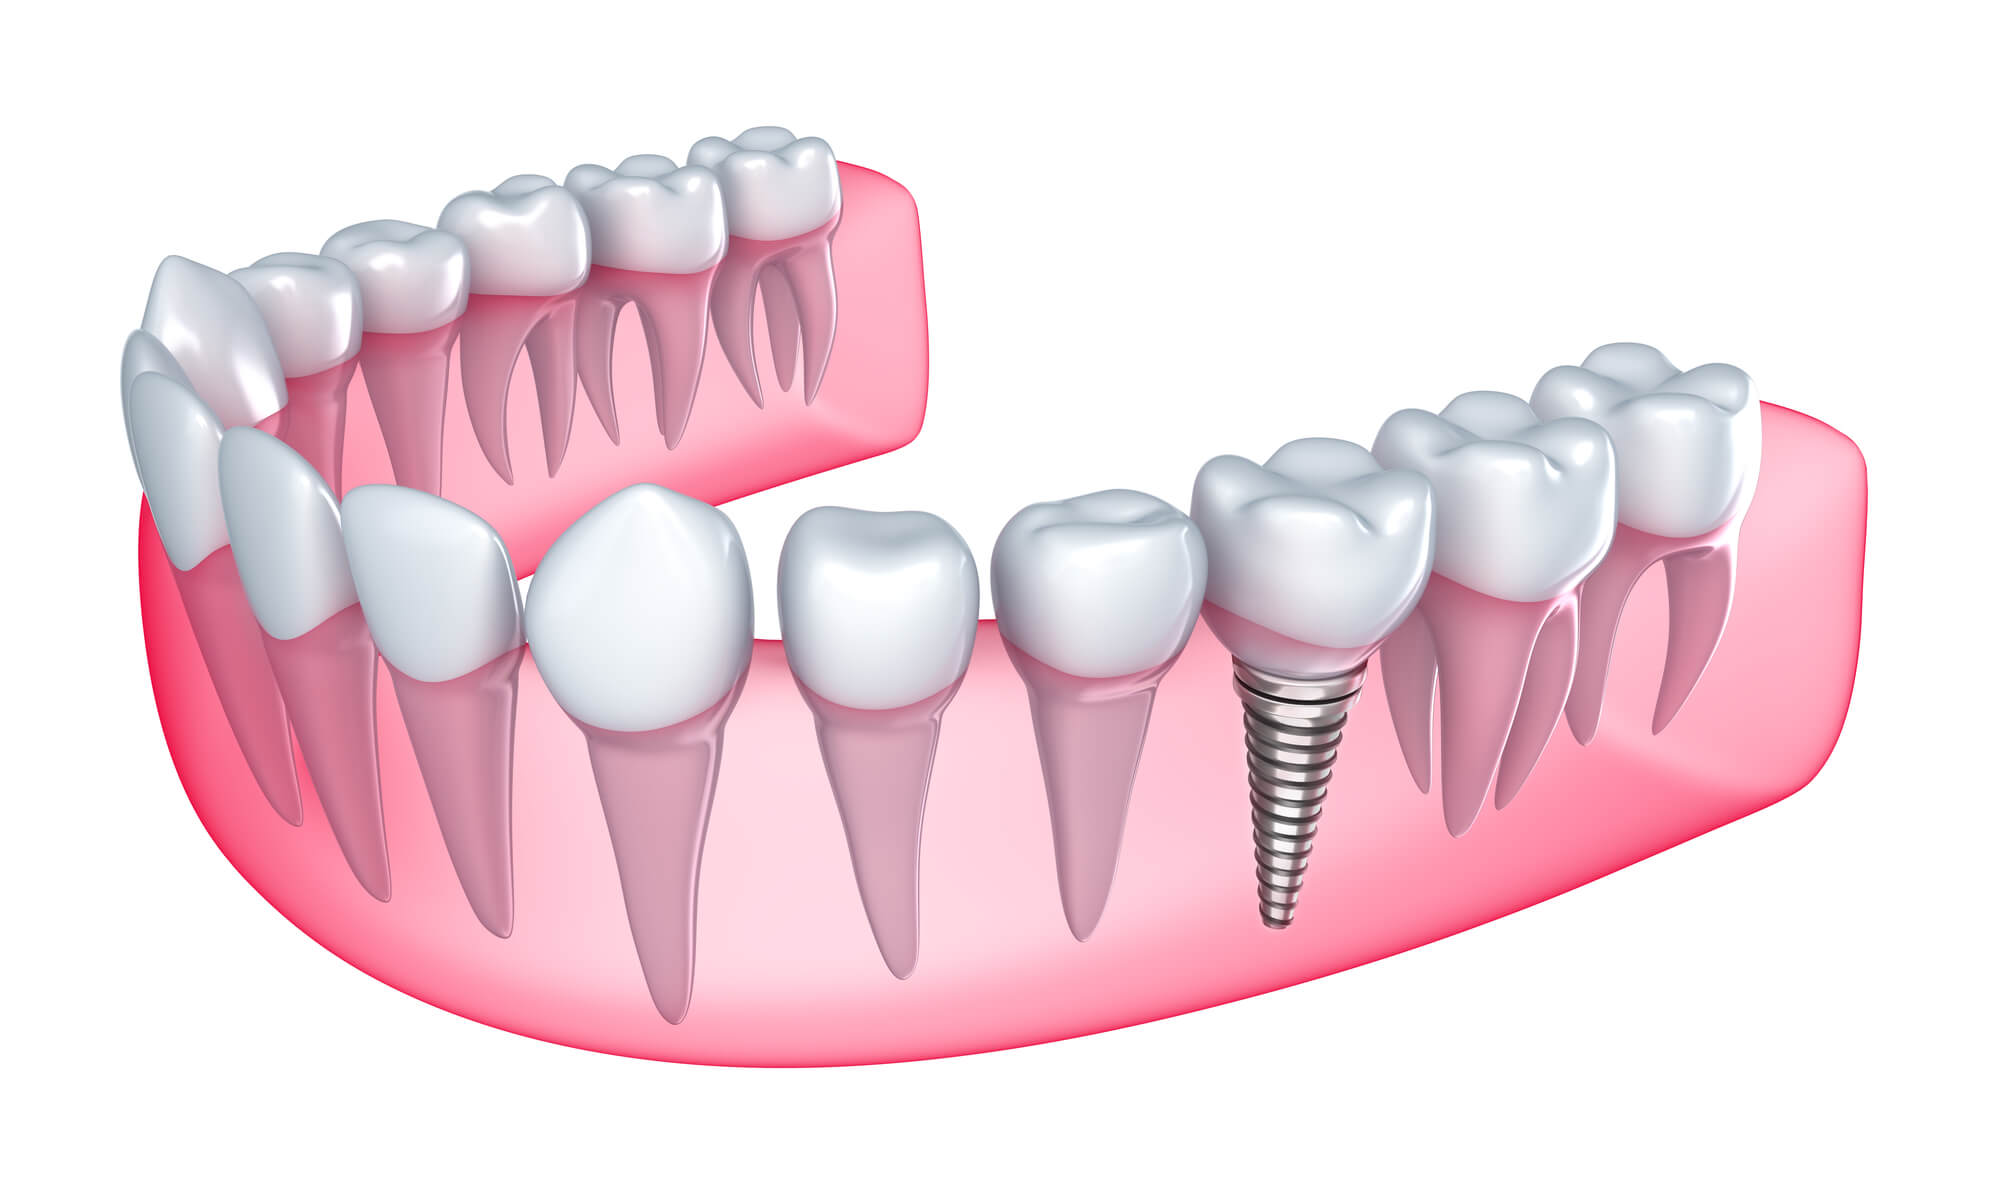 where is the best dental implants plantation?